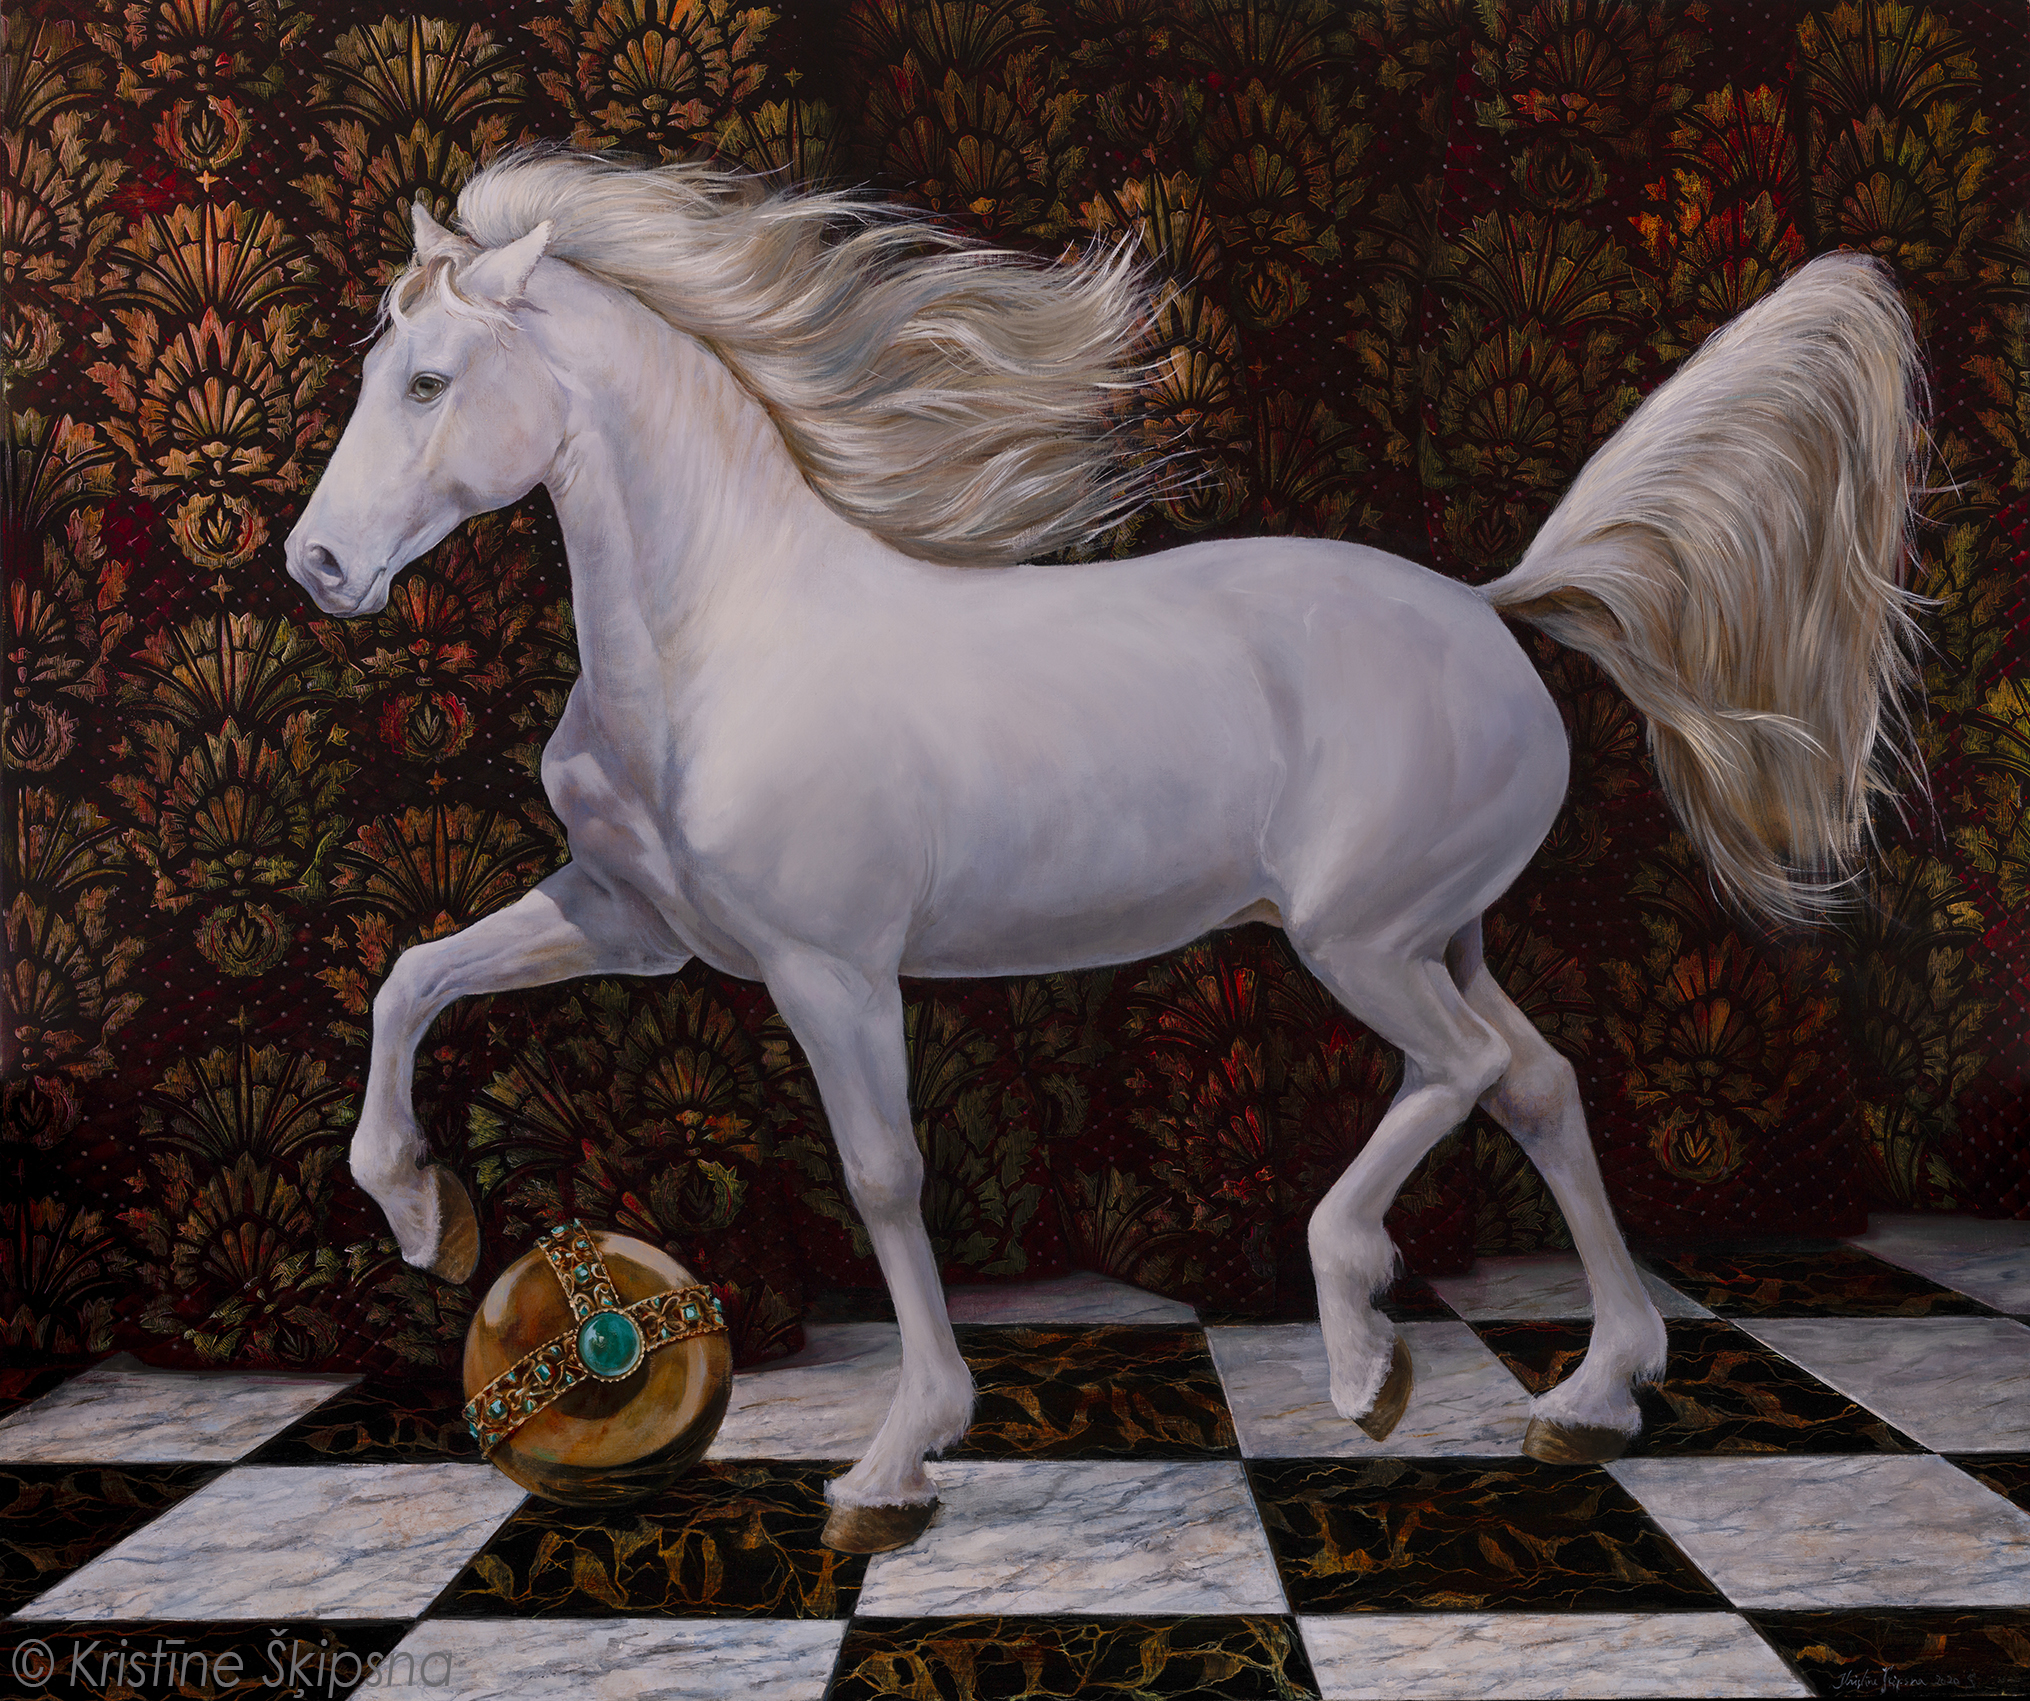 REX EQUUS, 100x120 cm, oil on canvas, 2020